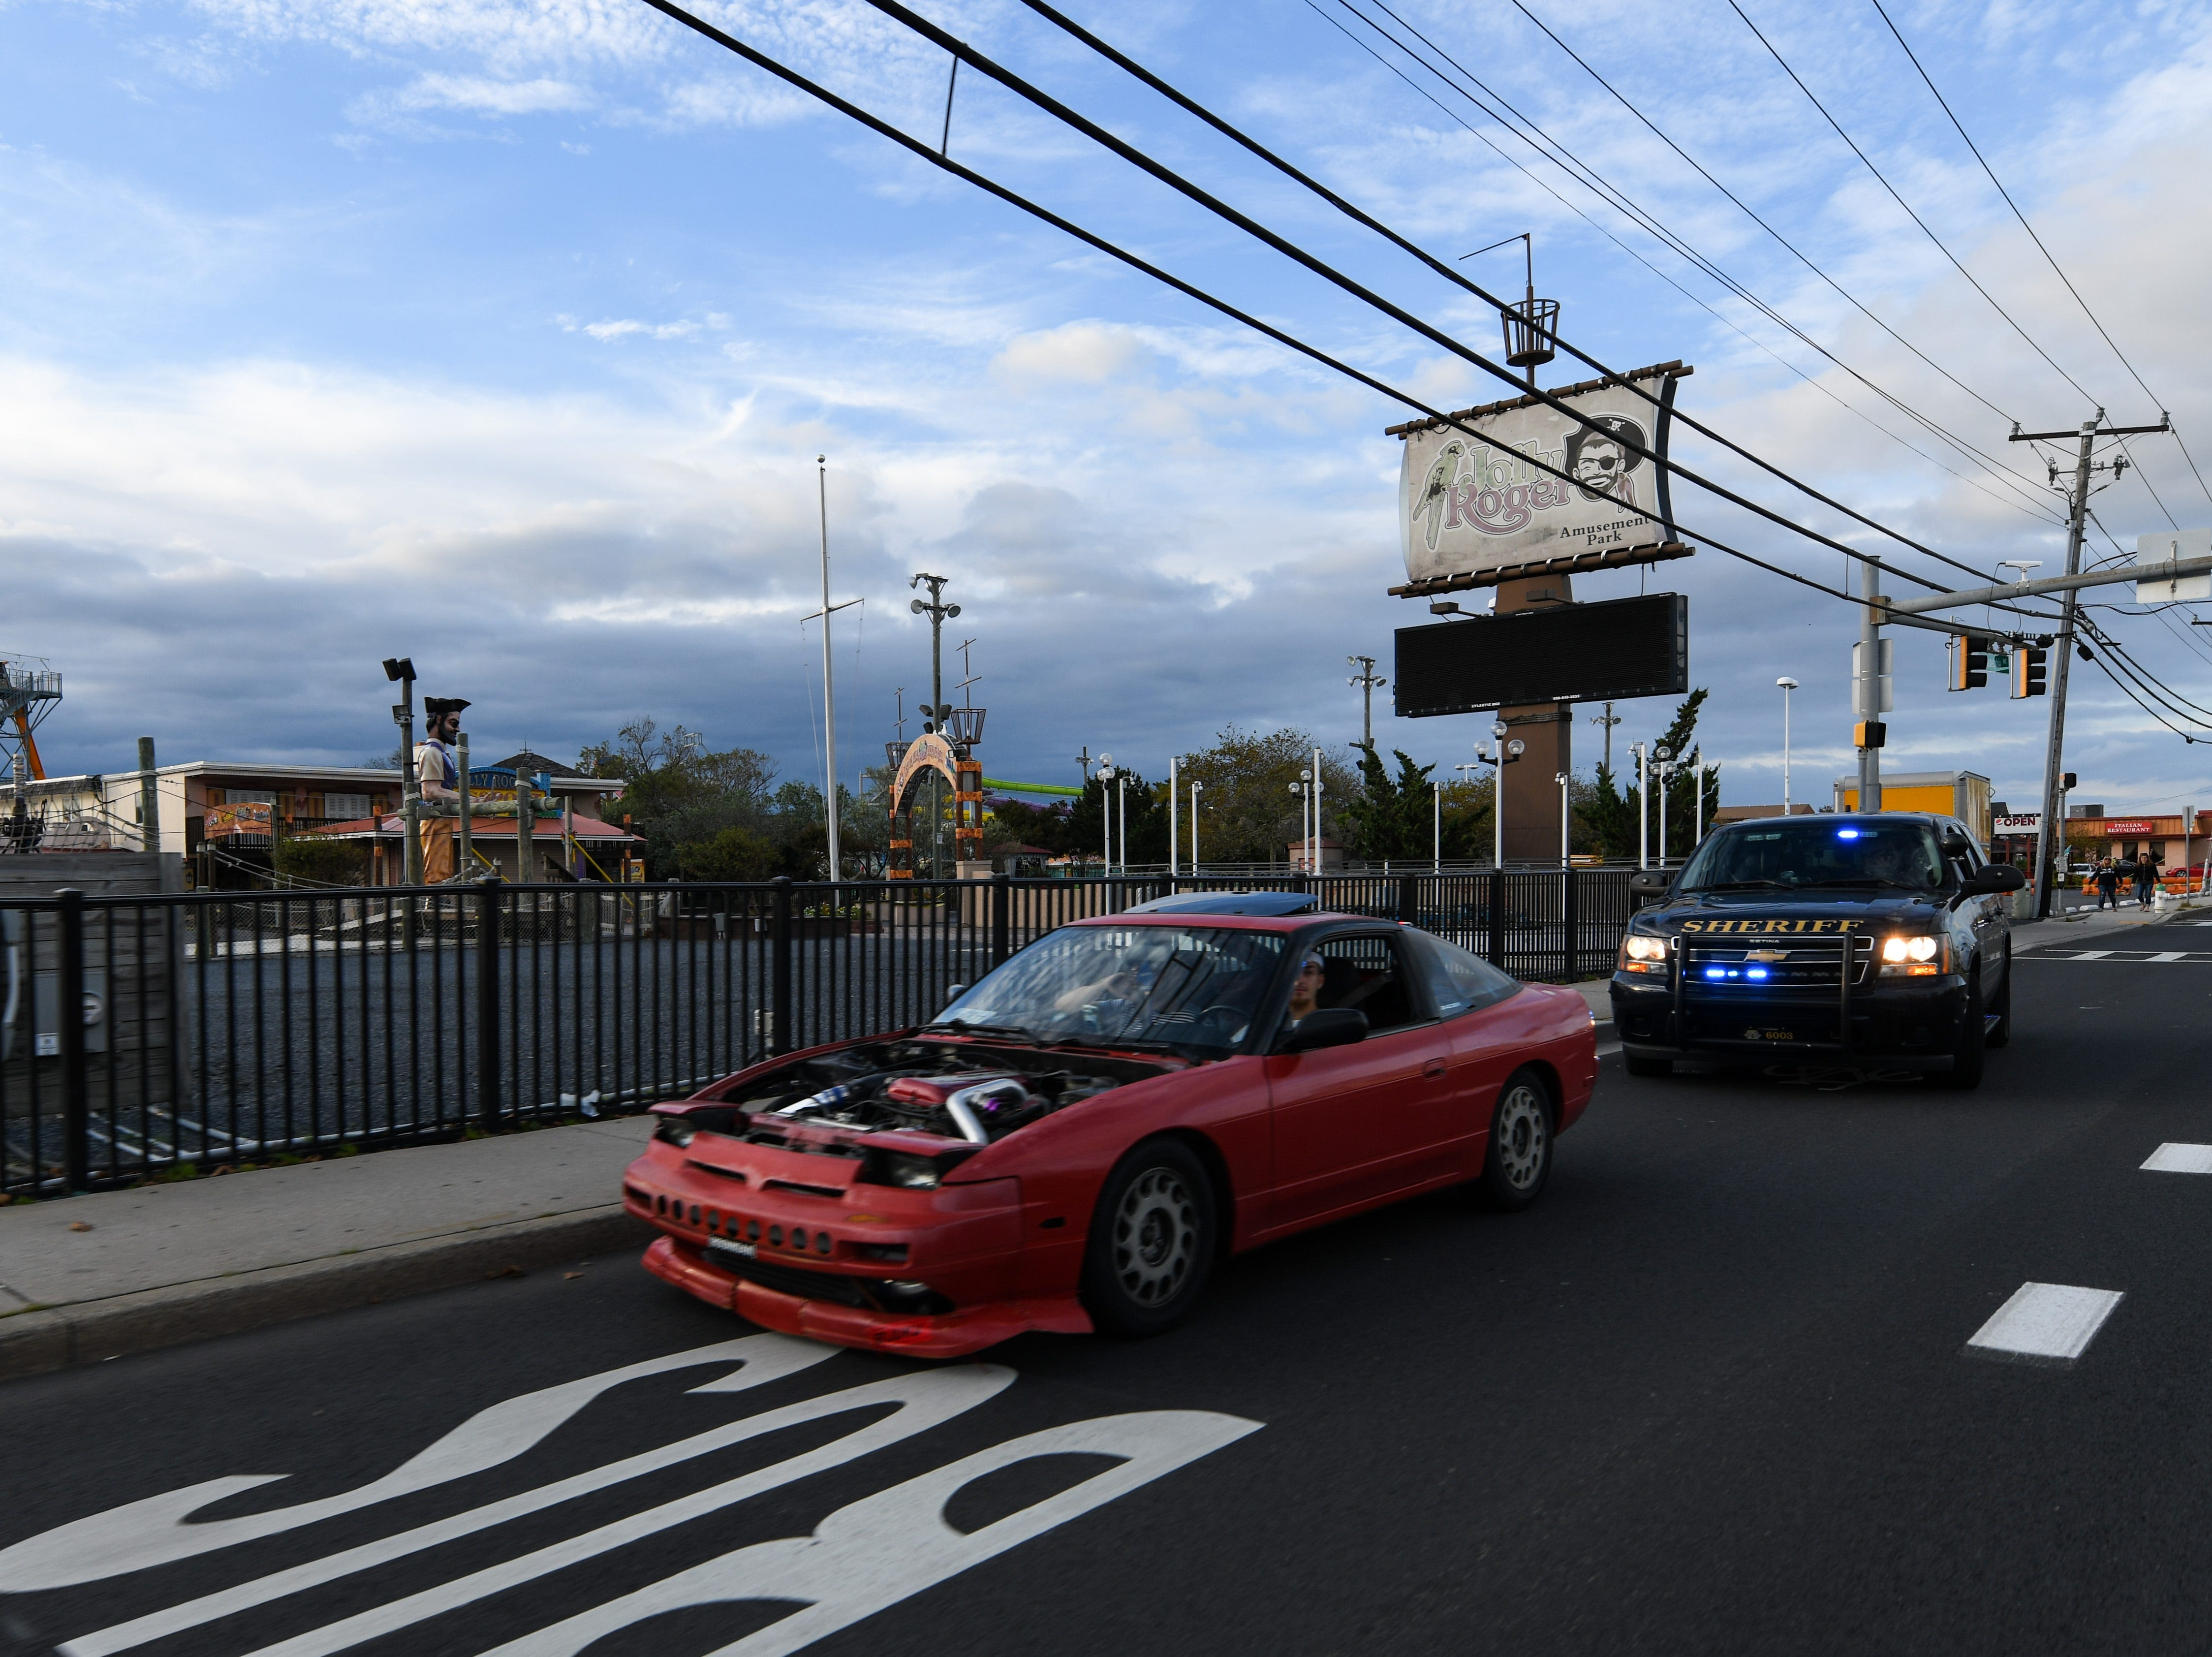 Ocean City police pull over a car driving with out a hood on Friday, Sept 28, 2018. Popular car show H2Oi  was traditionally held nearby and though it has now moved to Atlantic City attendees continue to flock to Ocean City.